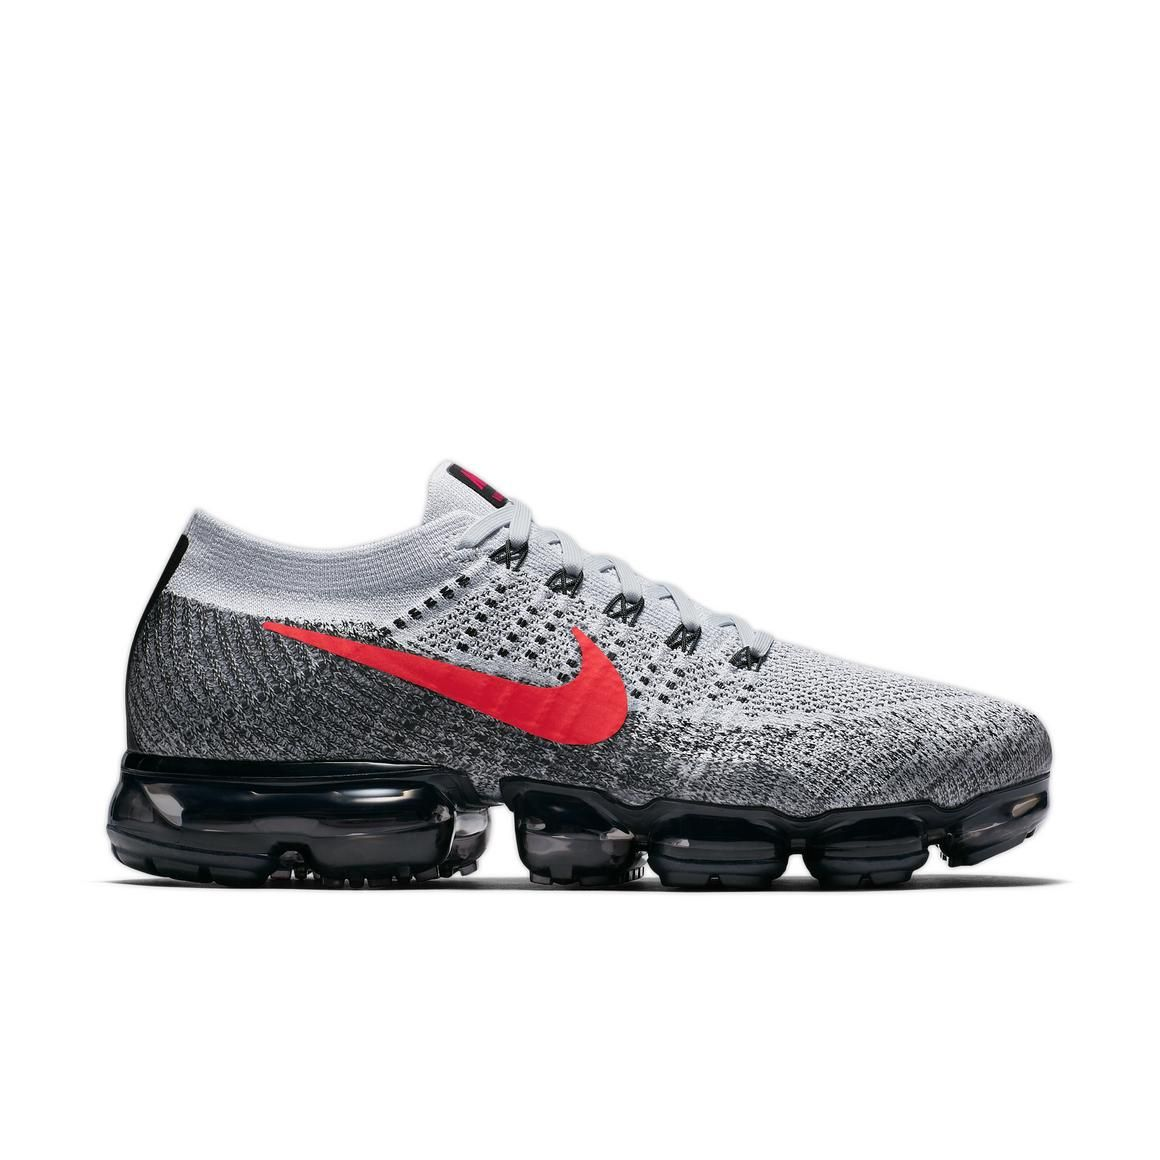 Nike Platinum Air Vapormax Flyknit Pure Platinum Nike  University Red Hombres Zapato f75a78